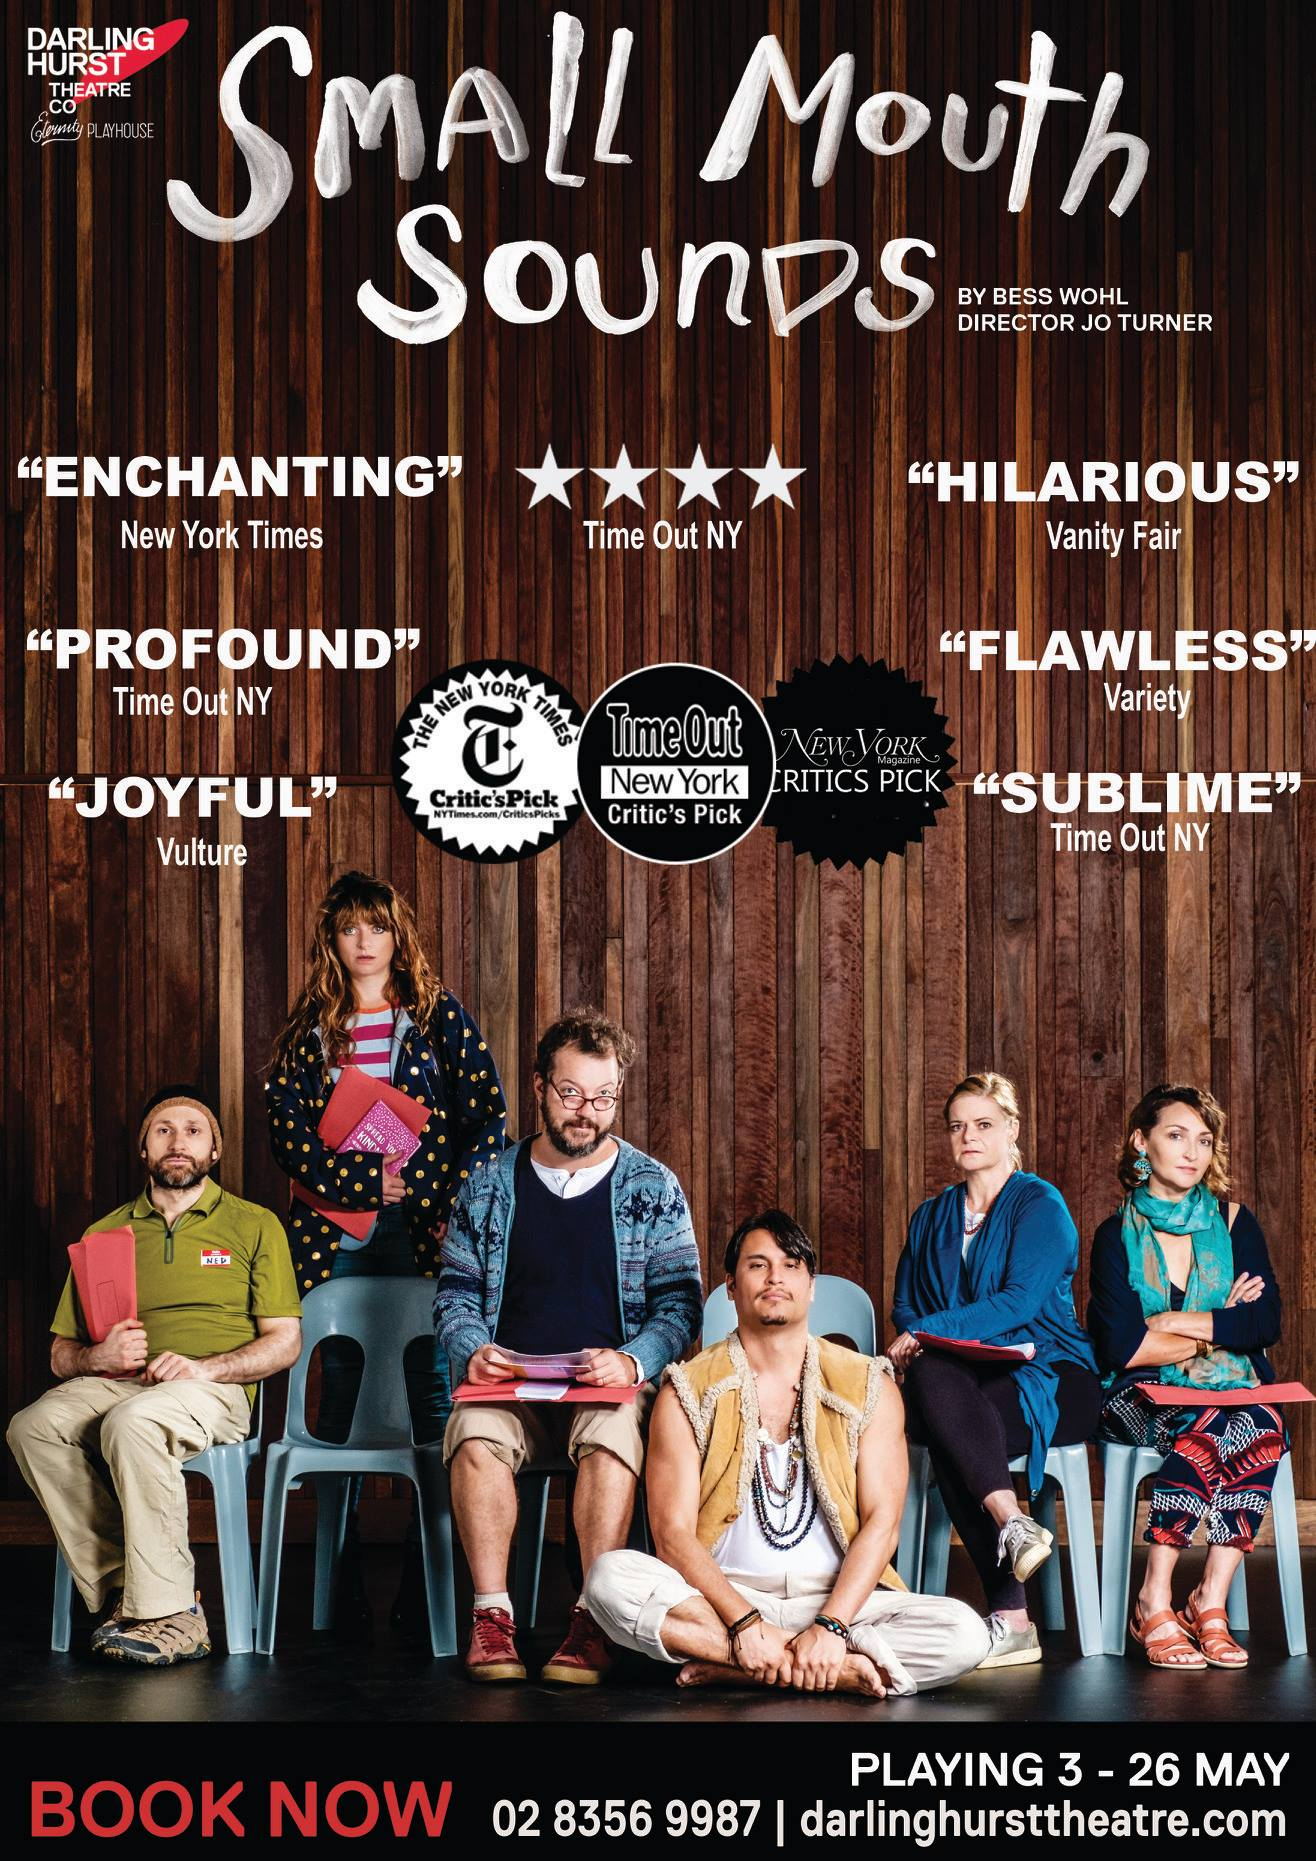 Small Mouth Sounds at Darlinghurst Theatre Company